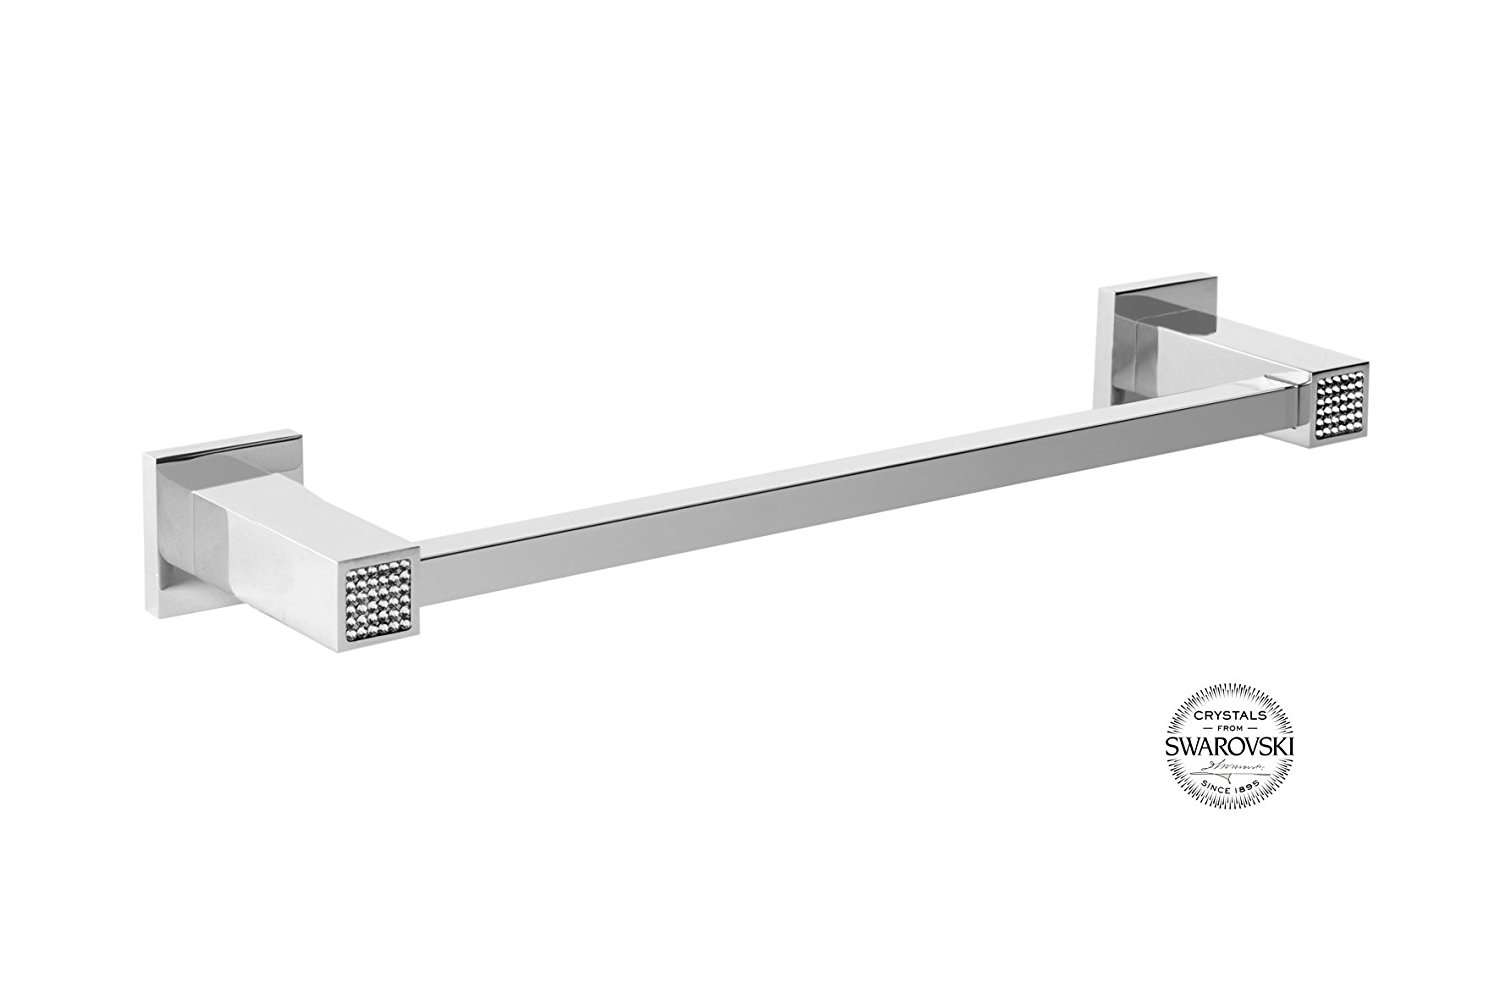 Skip Diamond Wall 24 Inch Bathroom Towel Bar Rail Holder, Wall Mount Bathroom  Accessories